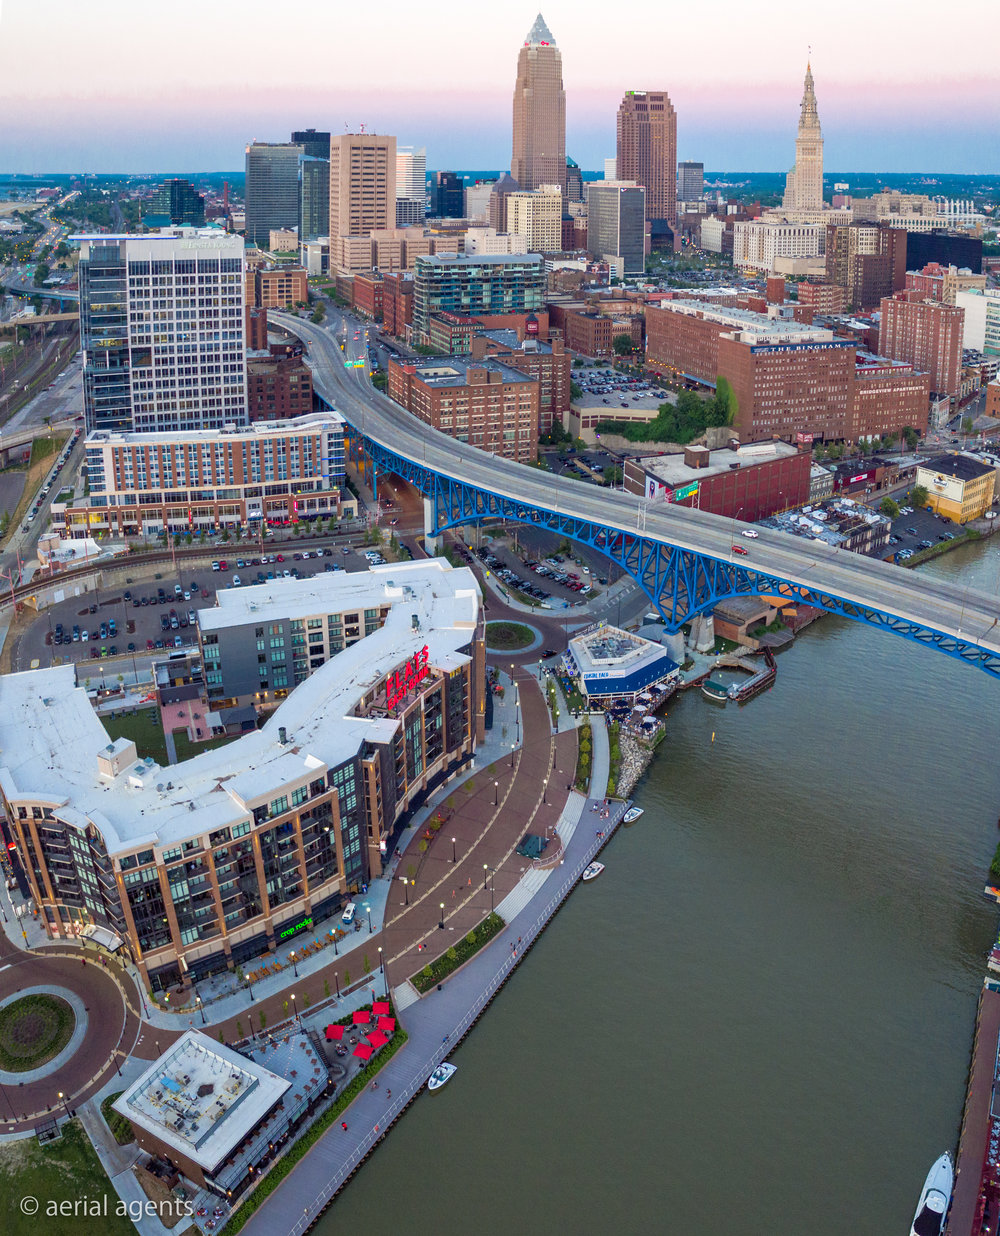 Flats East Bank by Aerial Agents-8.jpg